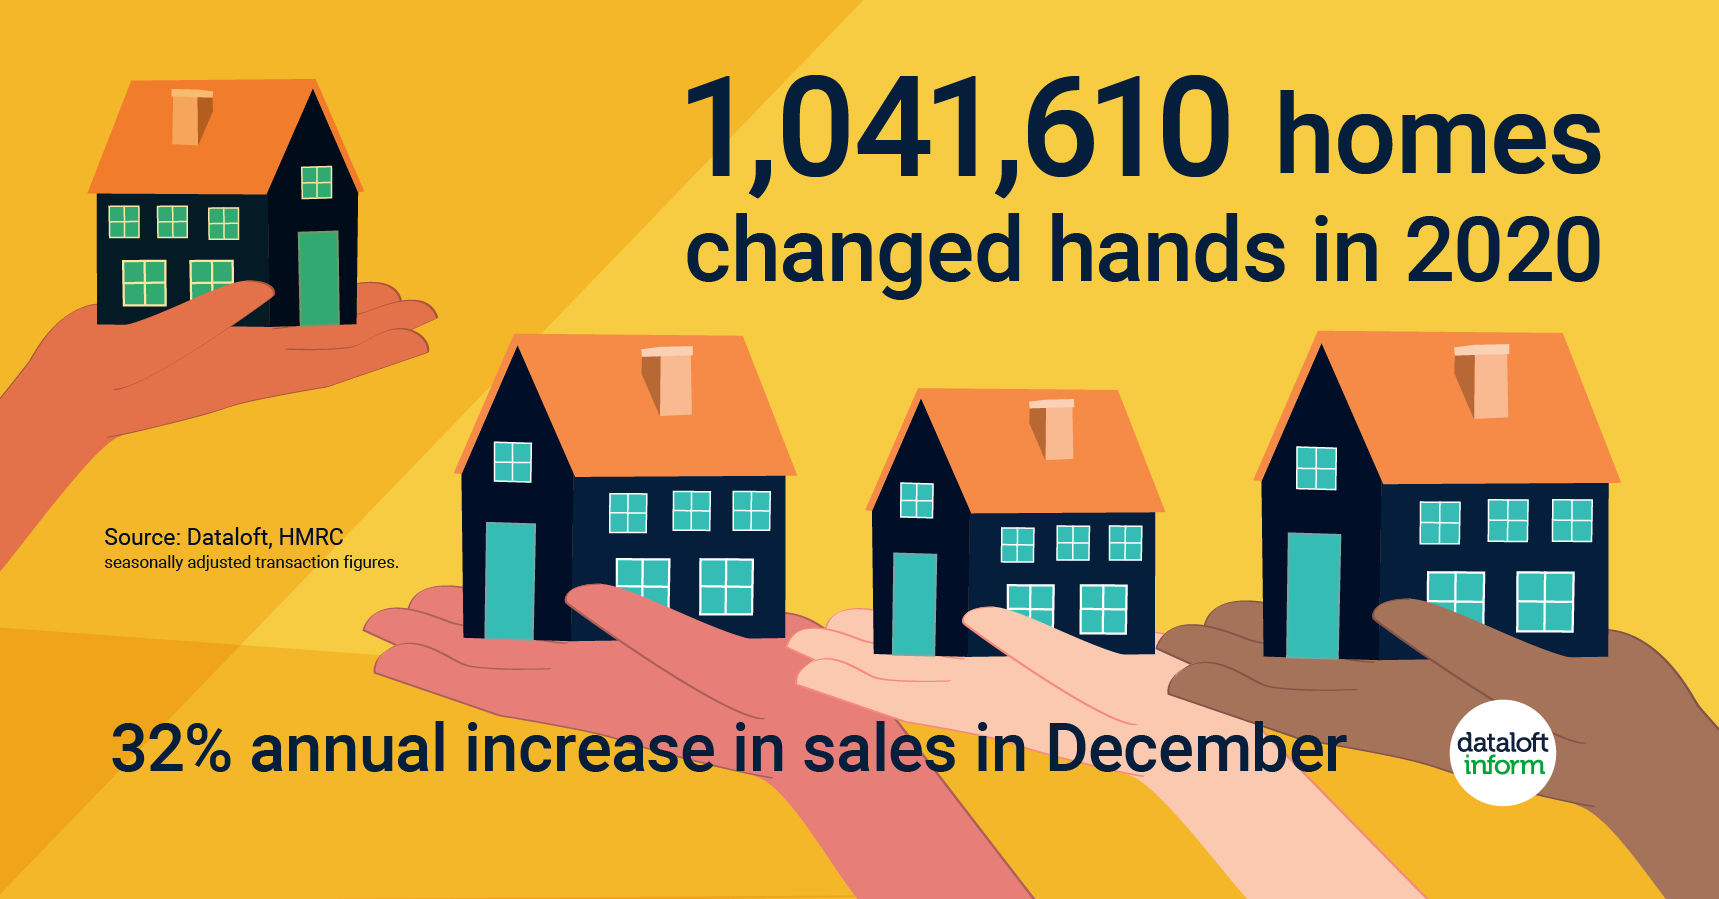 How many properties changed hands in Bromley in the last year?